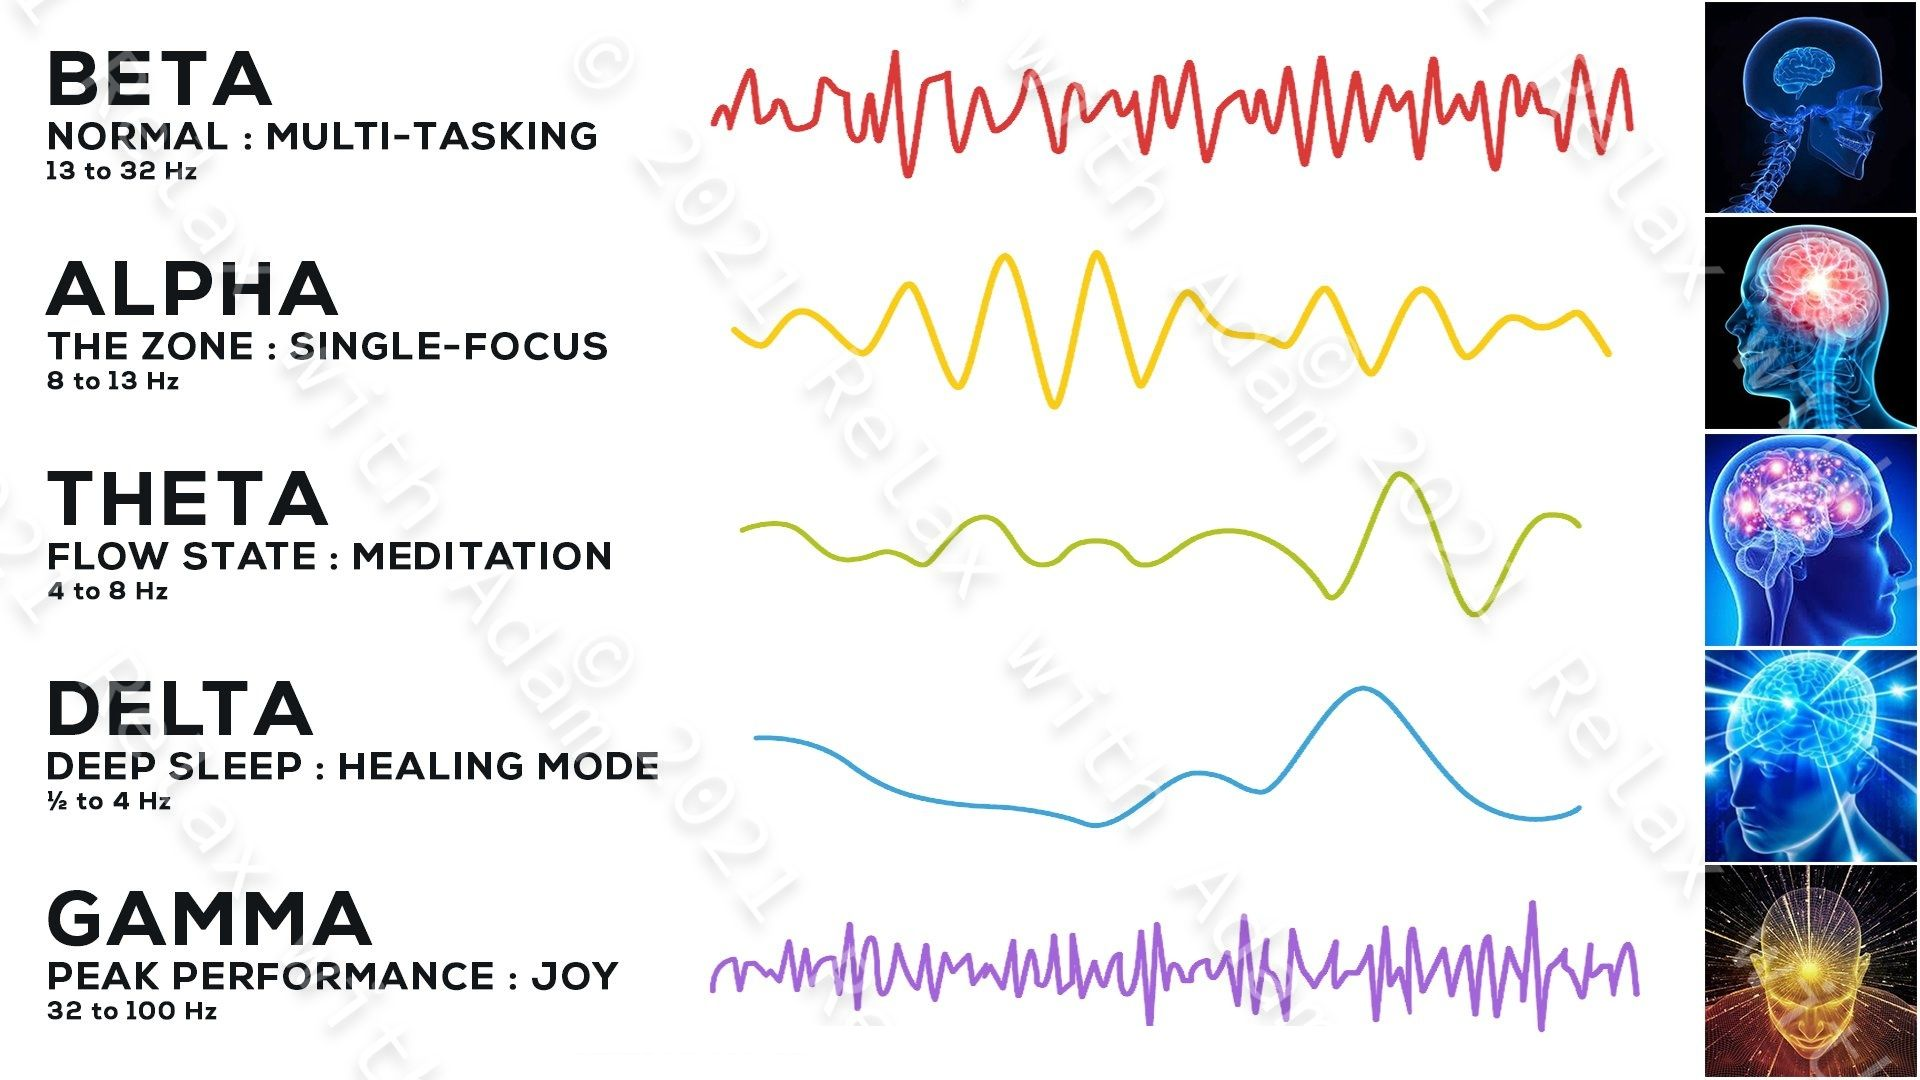 Illustration of the 5 primary brainwave states including waveform for Beta, Alpha, Theta, Delta, and Gamma. Learn to Harness these states of consciousness via the frequency, amplitude, and pitch of your brainwave patterns.